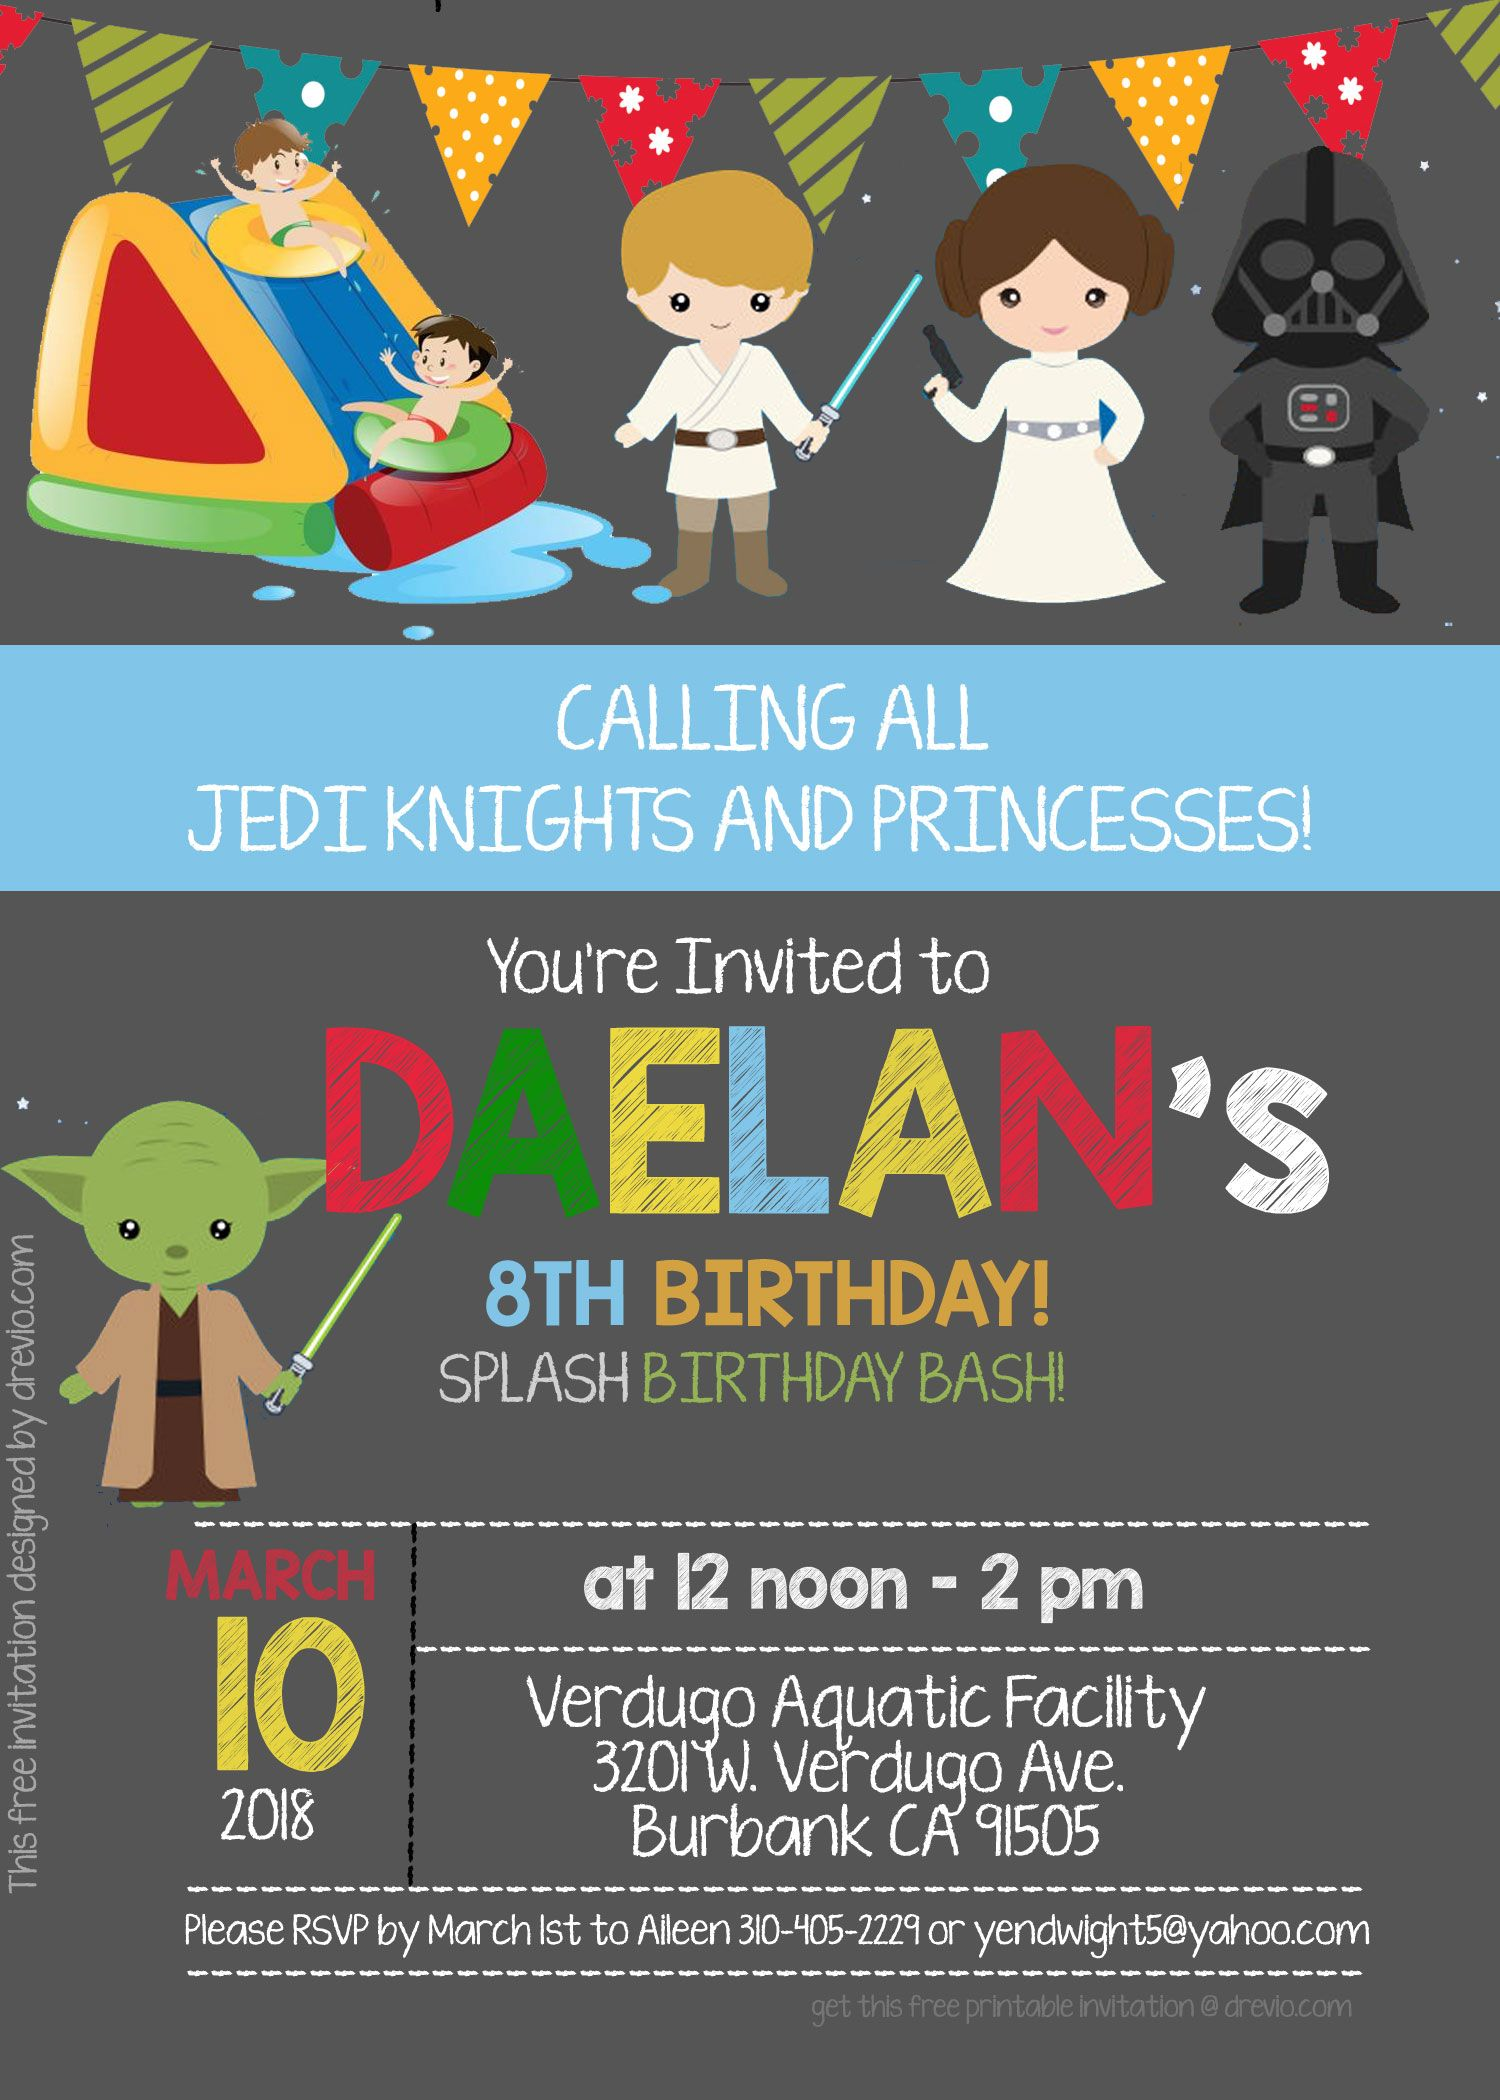 FREE Star Wars Pool Party Invitation Template - PSD | Party ...